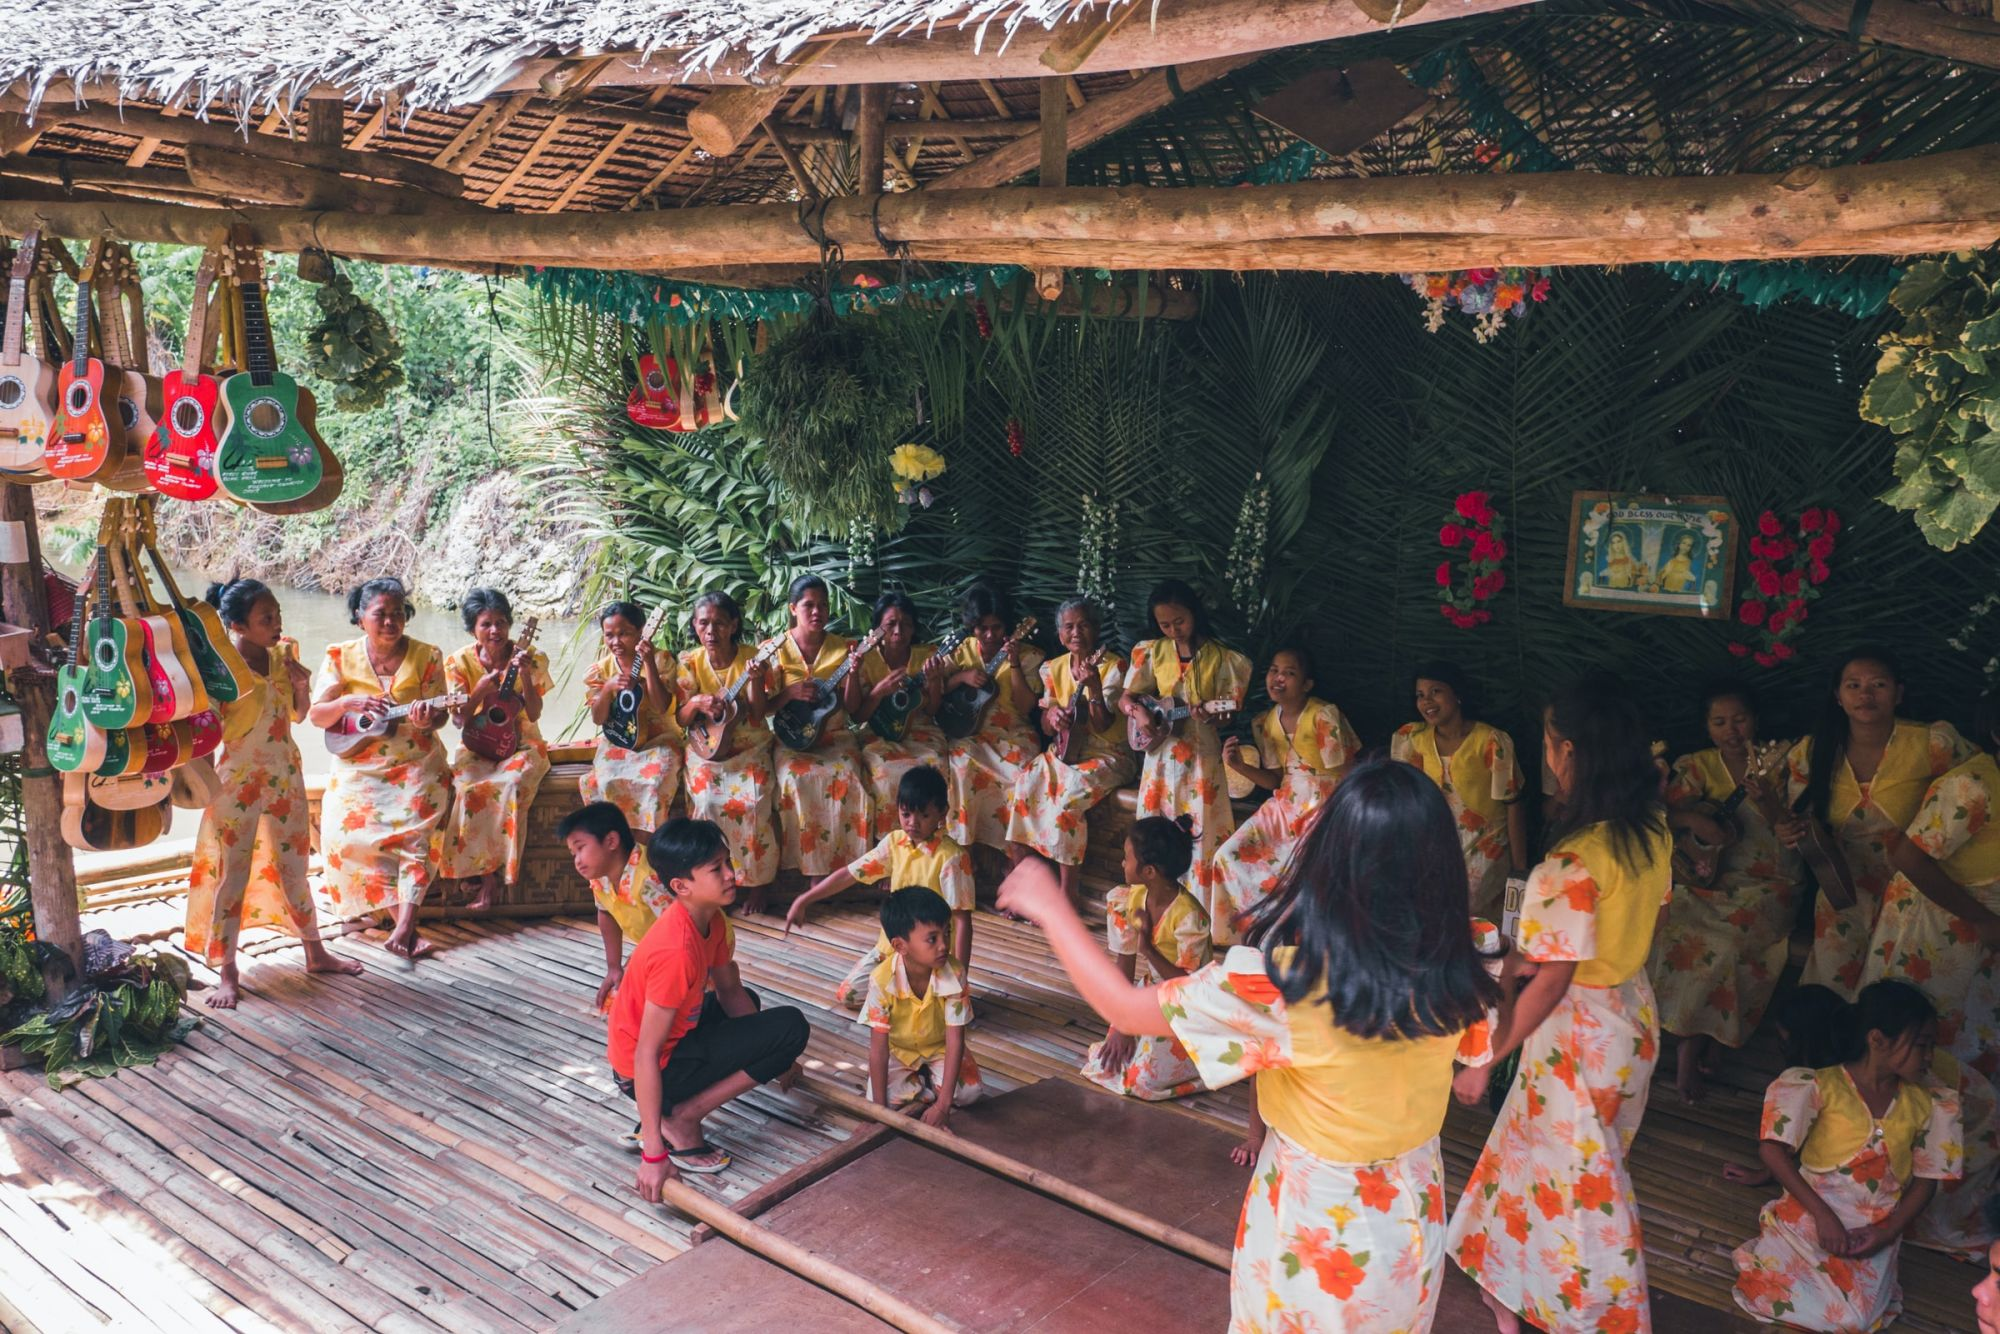 Competitive Kareoke, Bayanihan, and More: Five Traditions That Are Distinctively Filipino